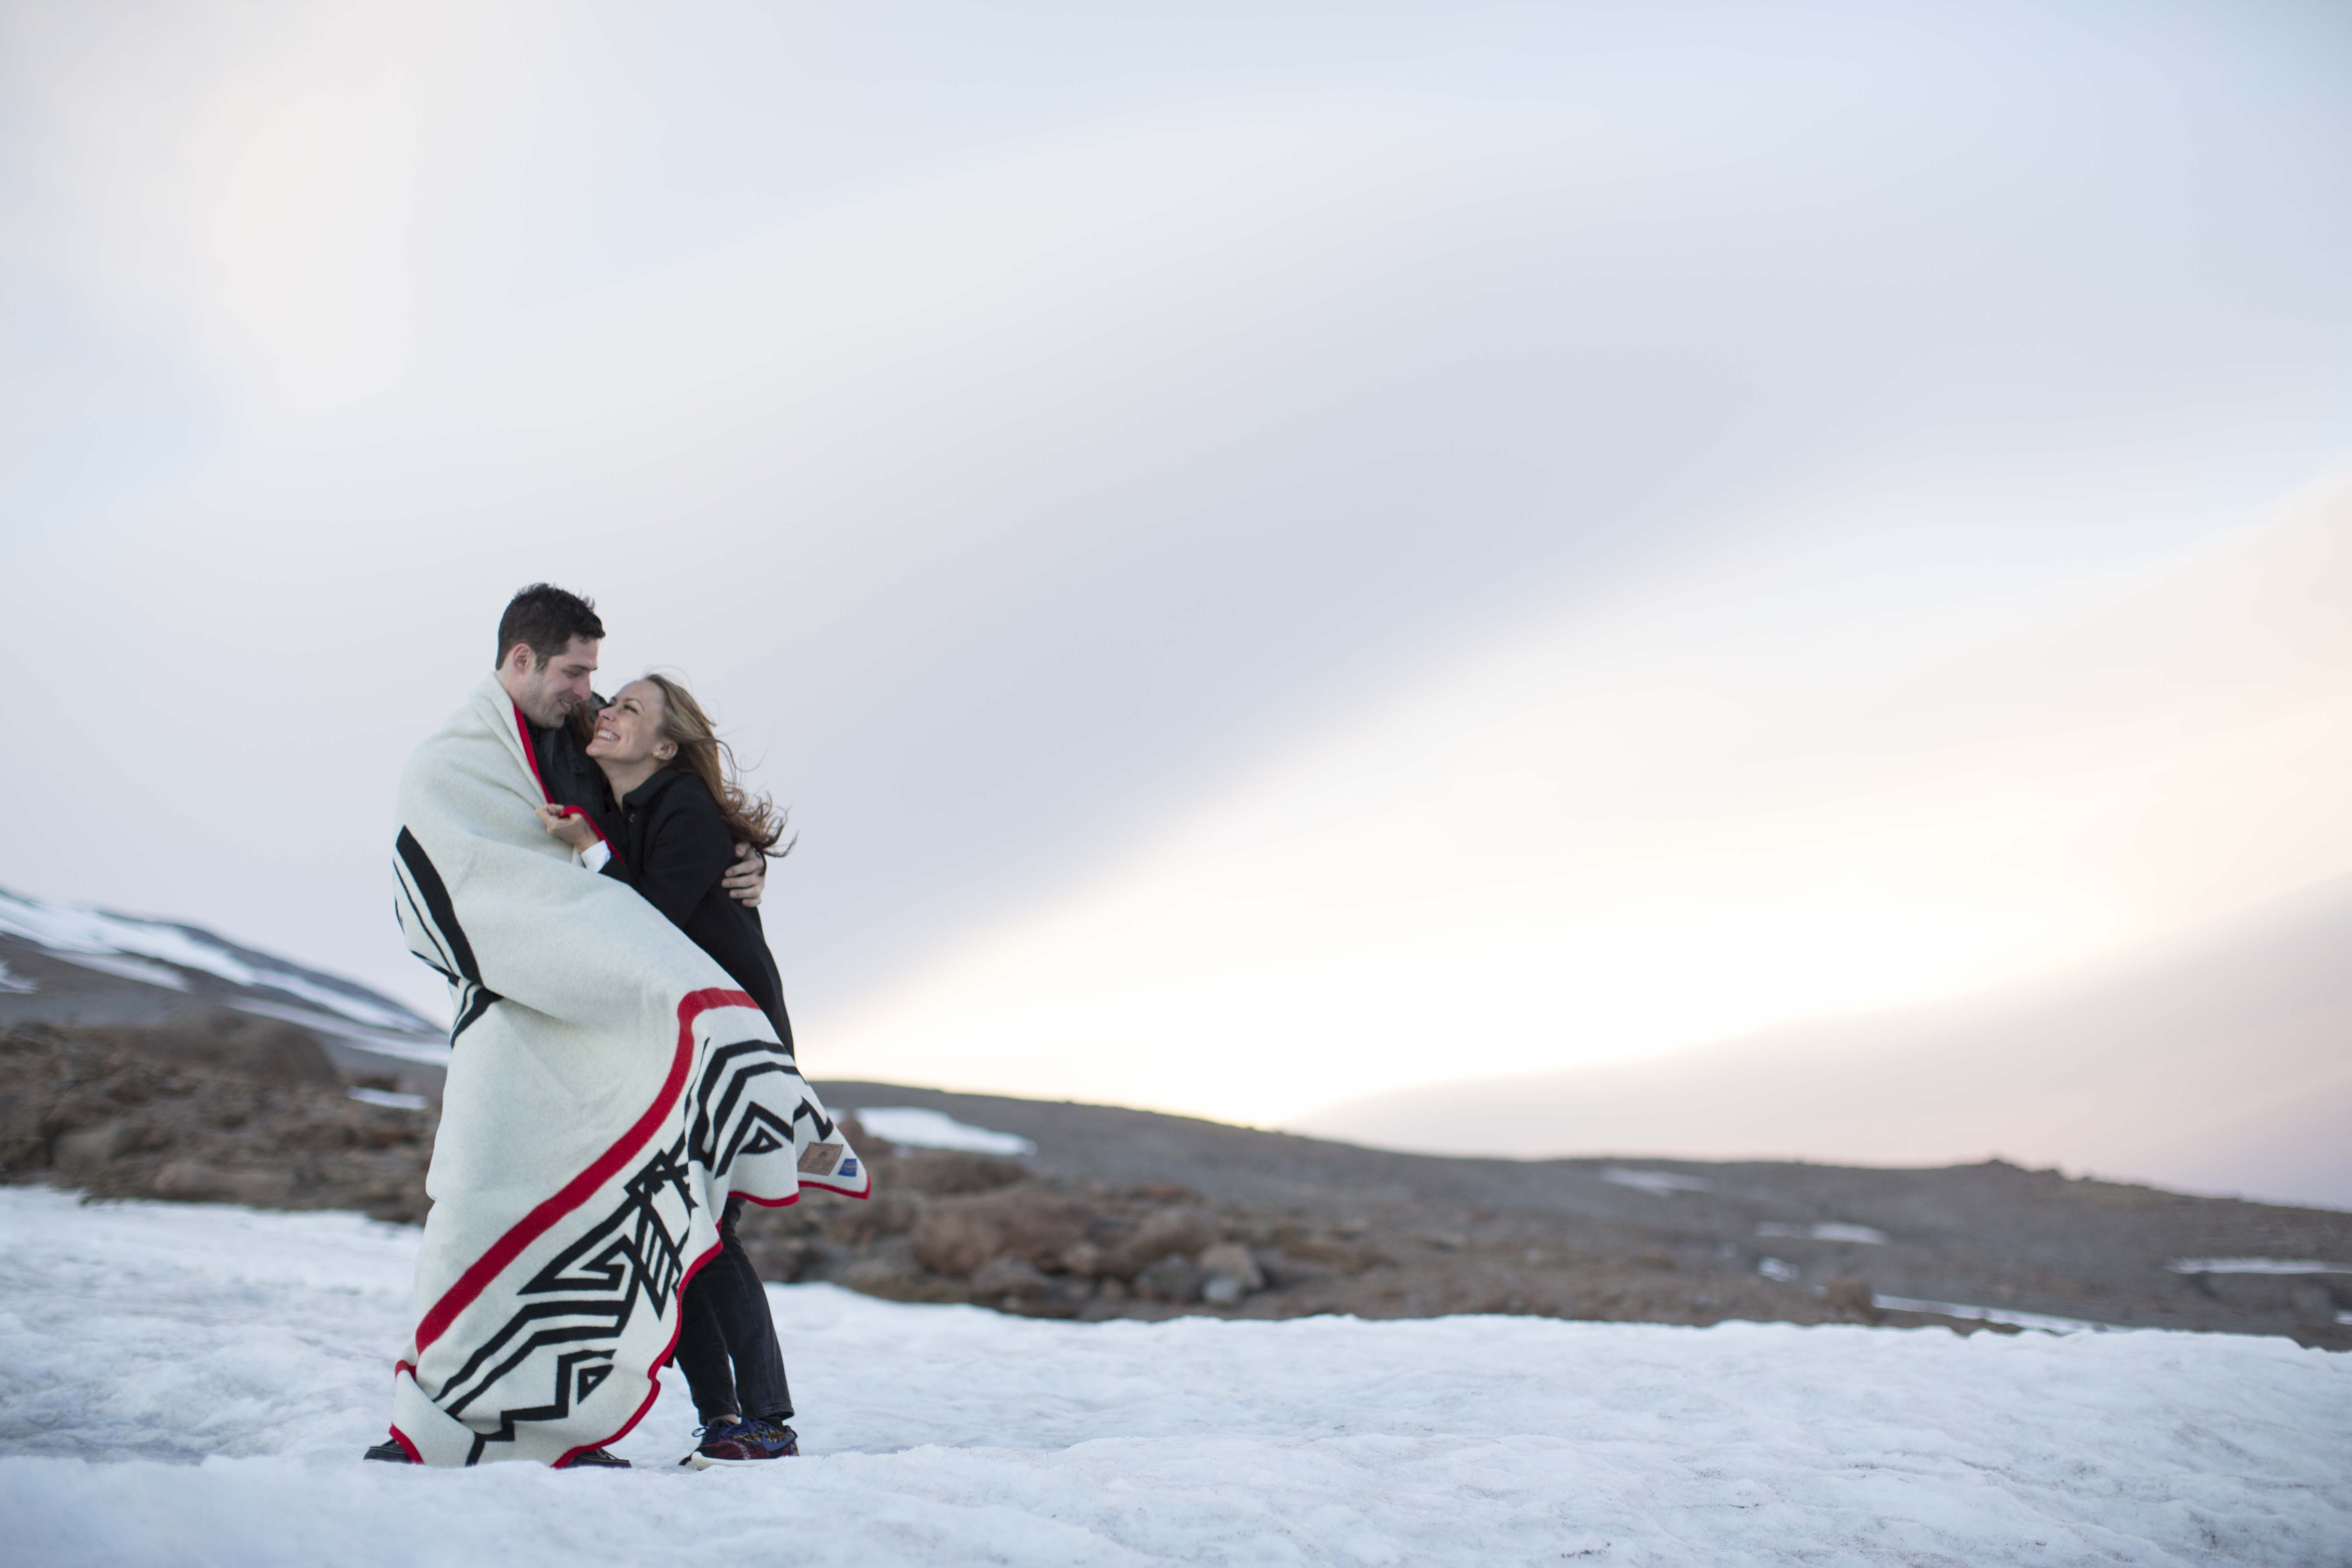 Sarah and Jeffrey on the snowy slopes of Mt Hood, wrapped in a Friends of Timberline blanket.